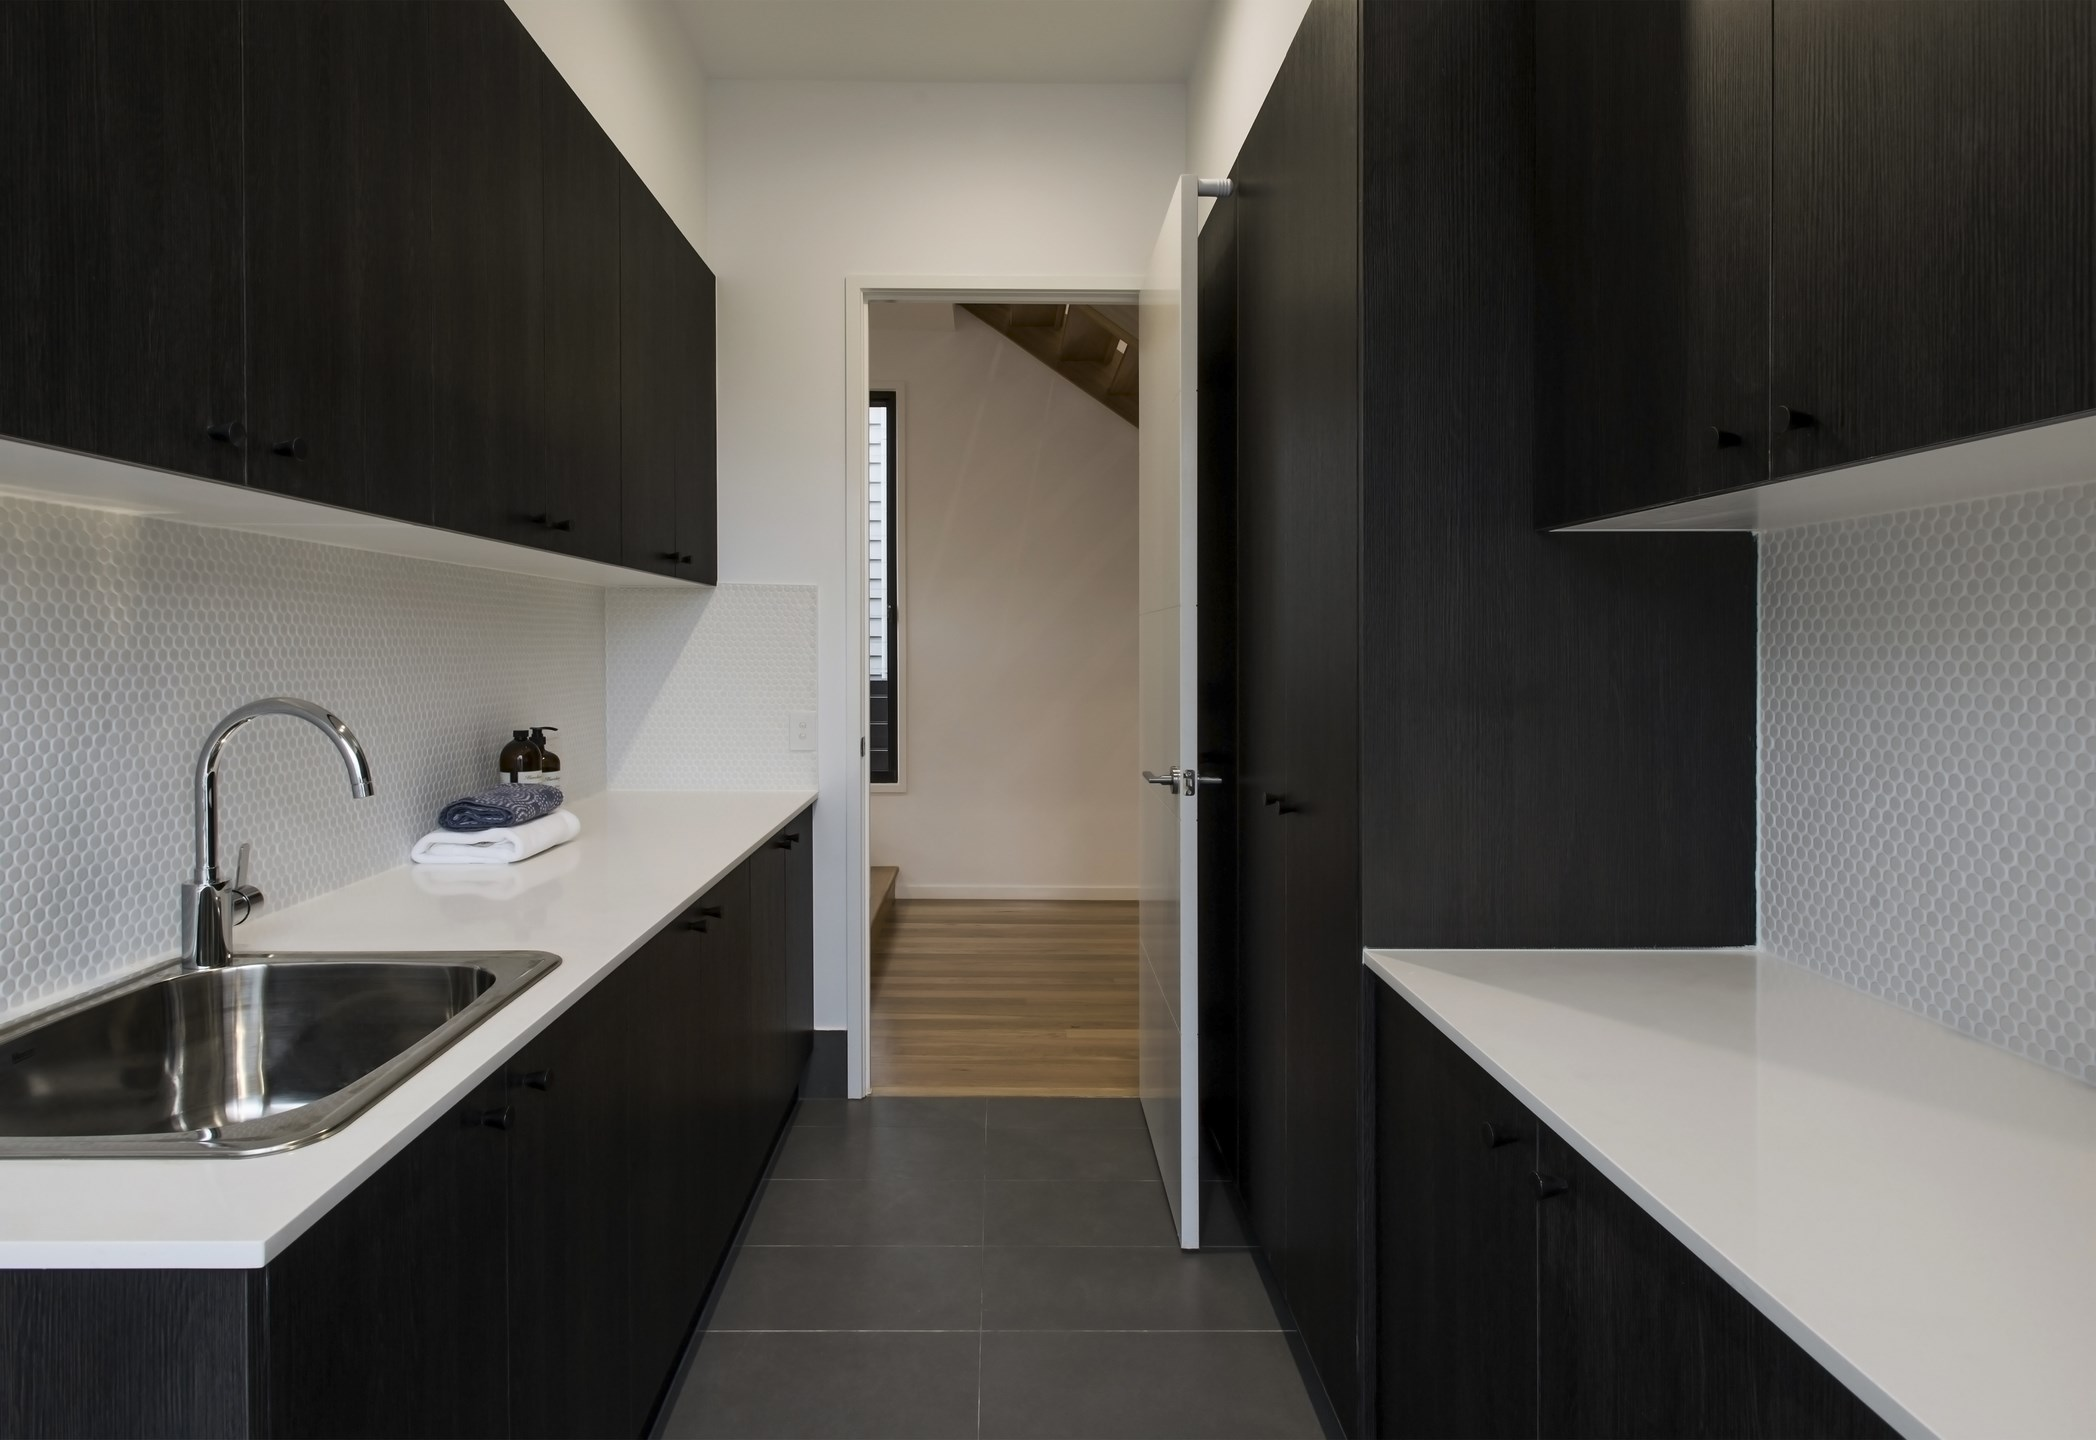 Sydney Road Kimu Joinery